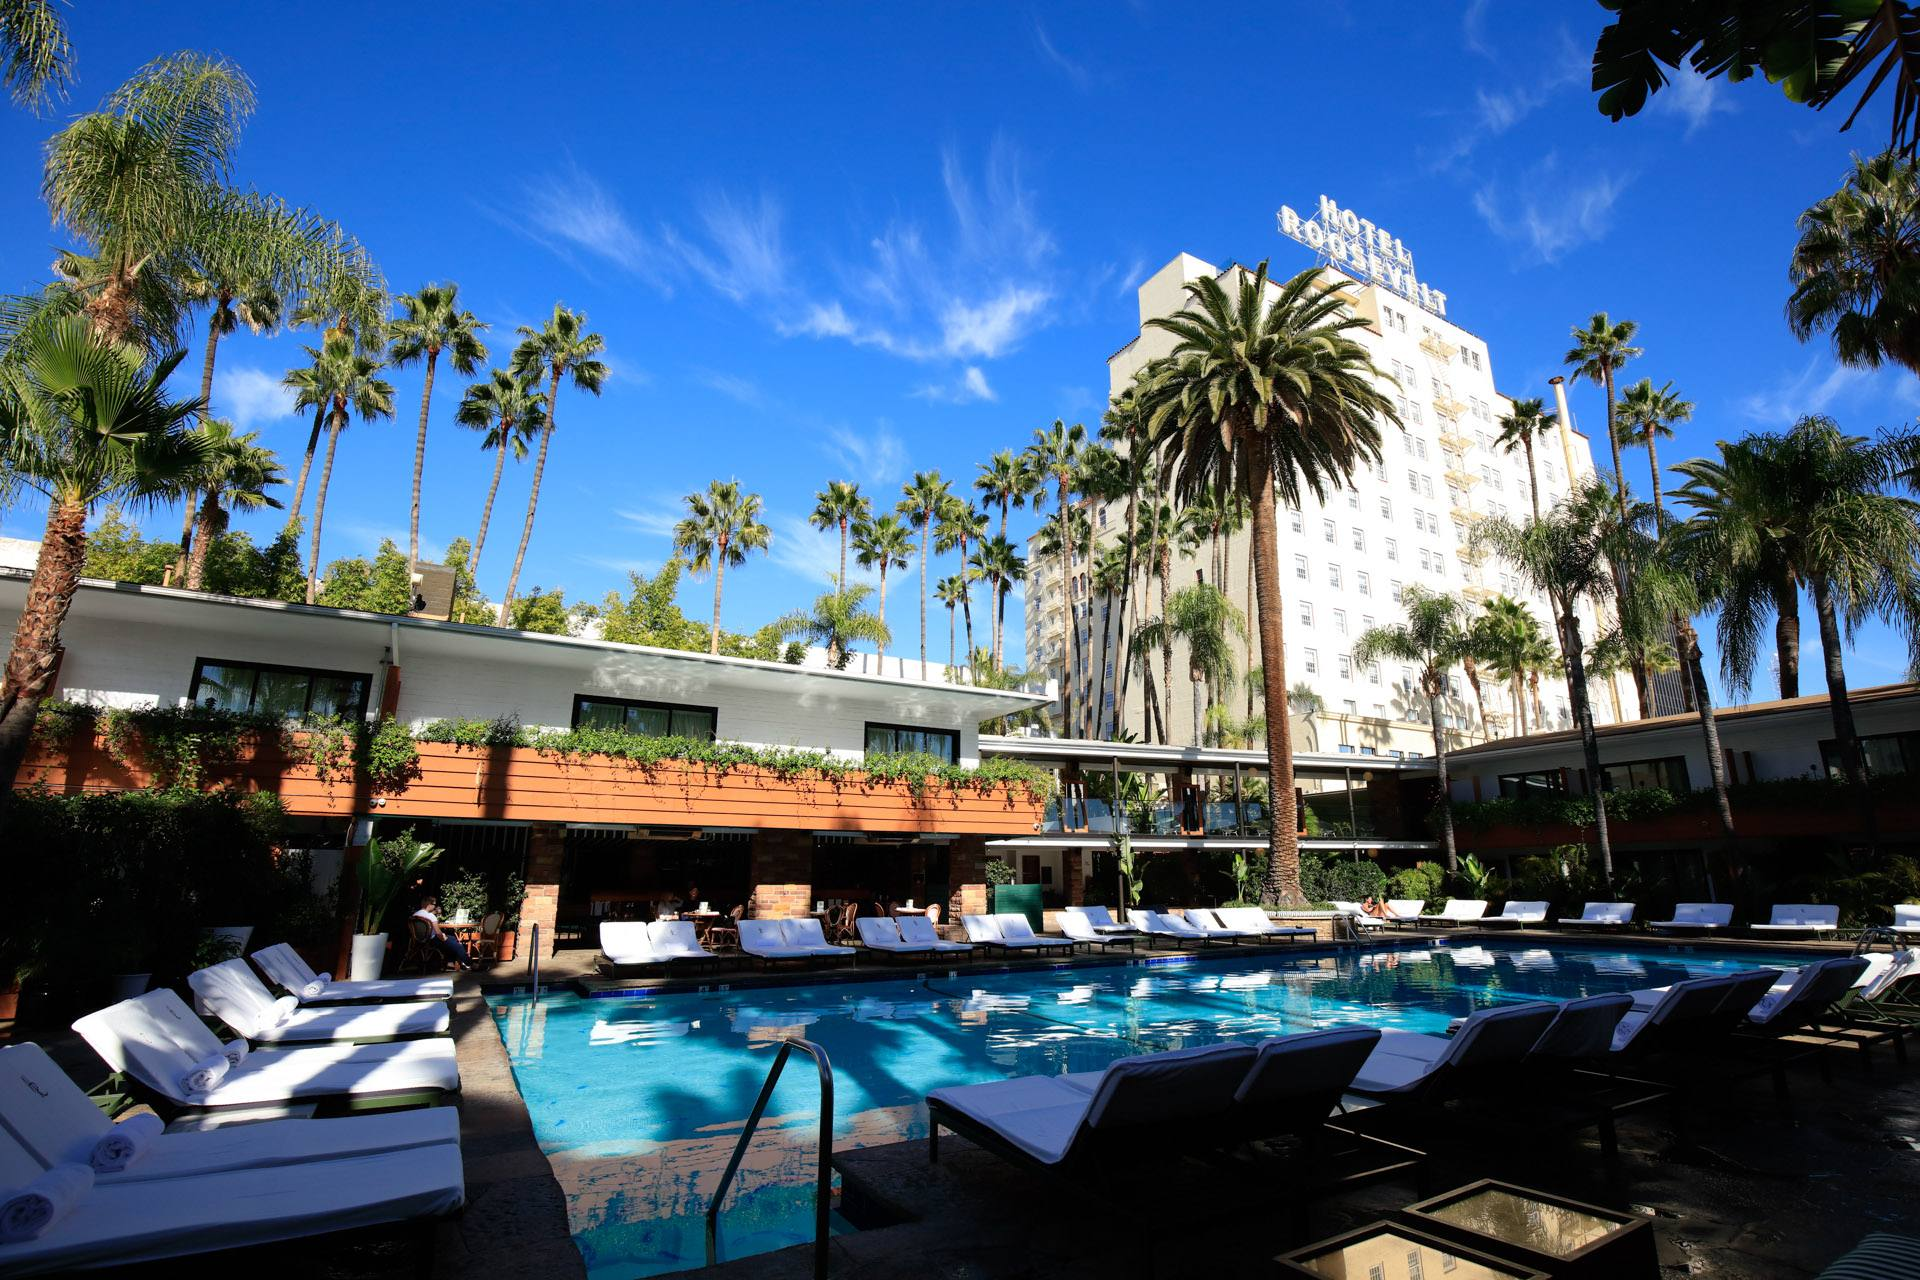 Hollywood Roosevelt Hotel Tower and Tropicana Pool